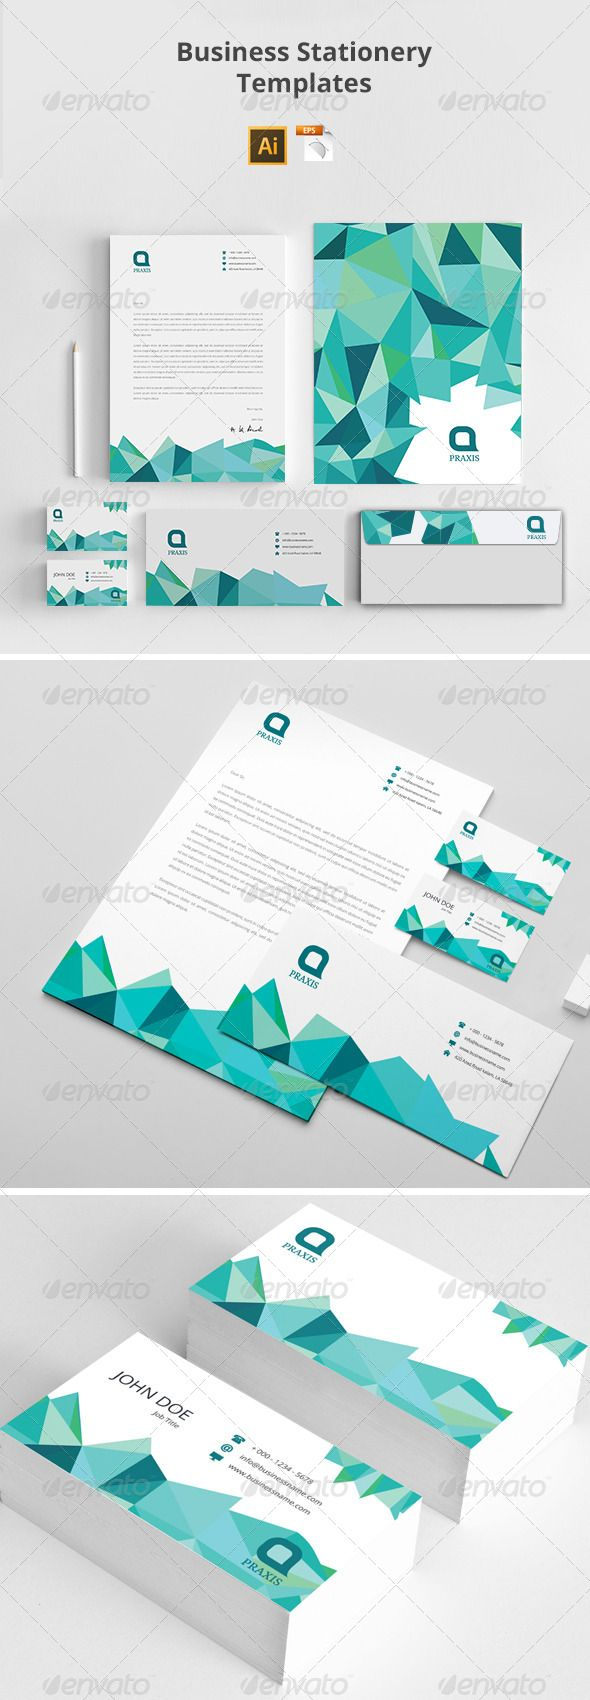 Business stationery templates pinterest stationery templates business stationery templates cheaphphosting Gallery